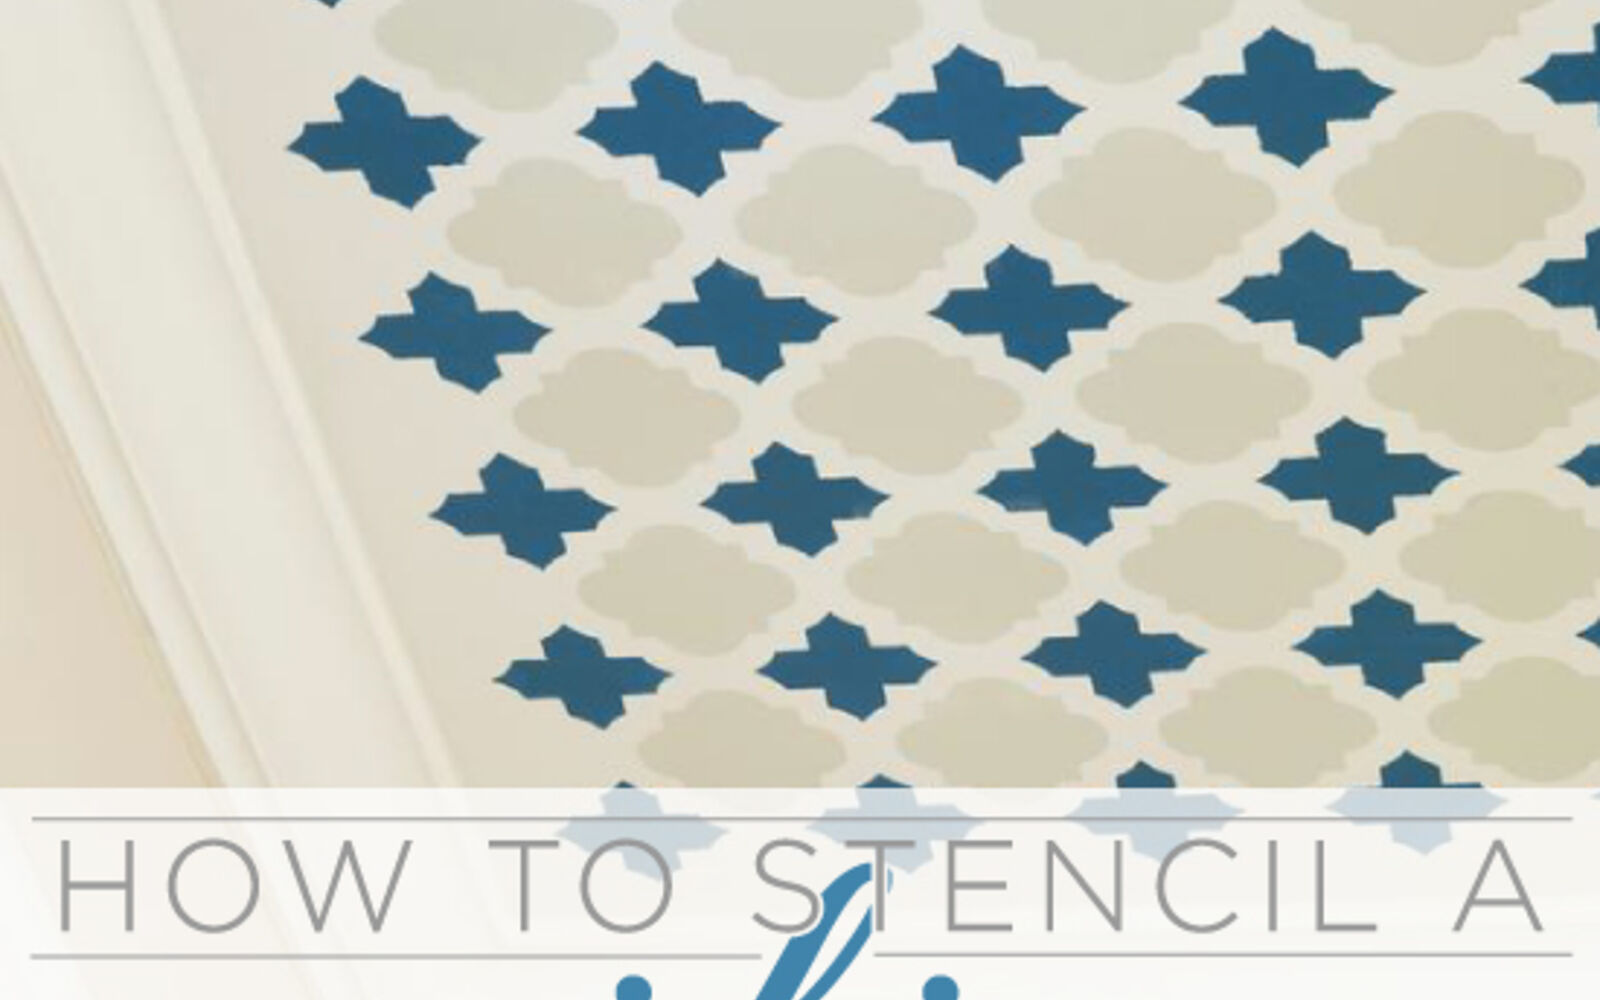 s 14 glamorous ways to upgrade your home using stencils, Learn How To Stencil a Fun Pattern on Your Ce